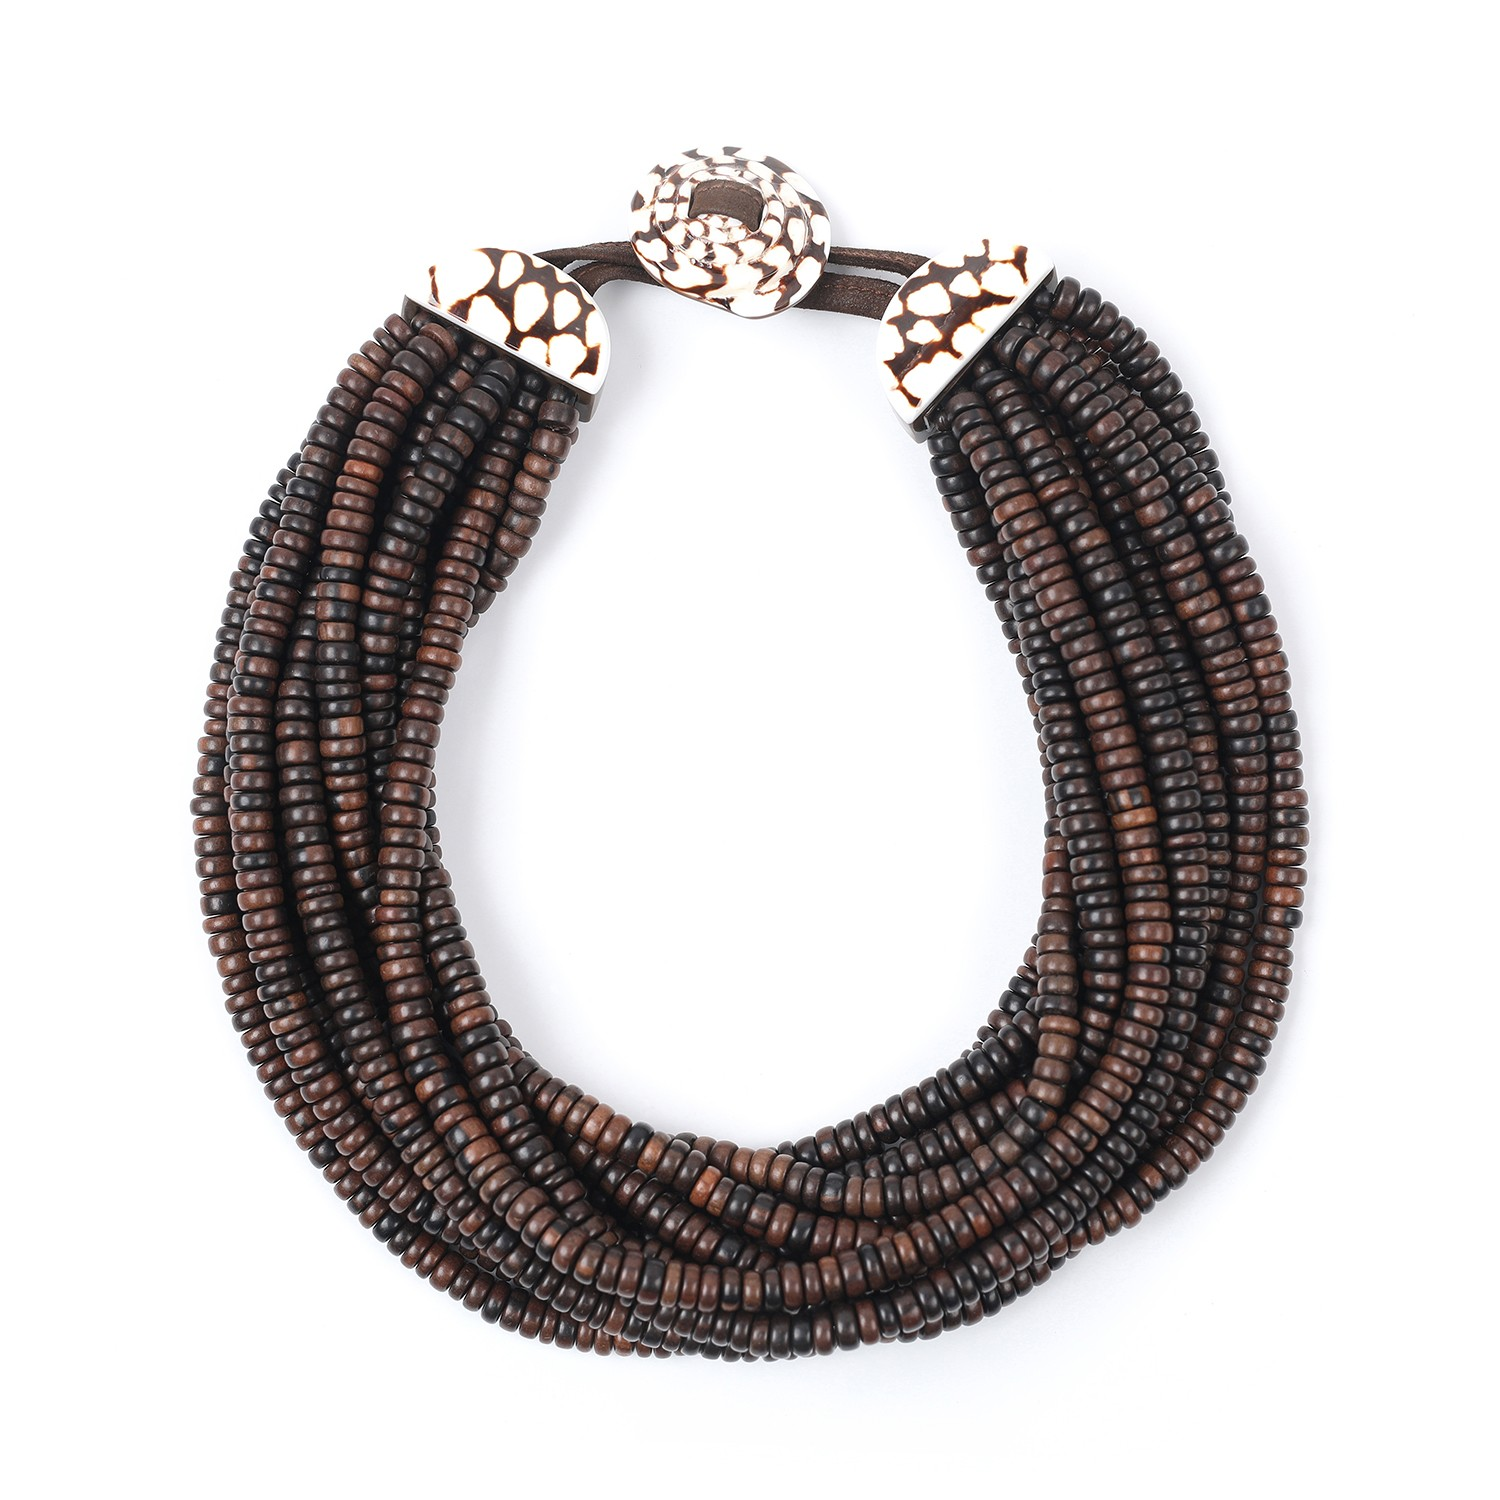 Necklace limited edition shell and ebony